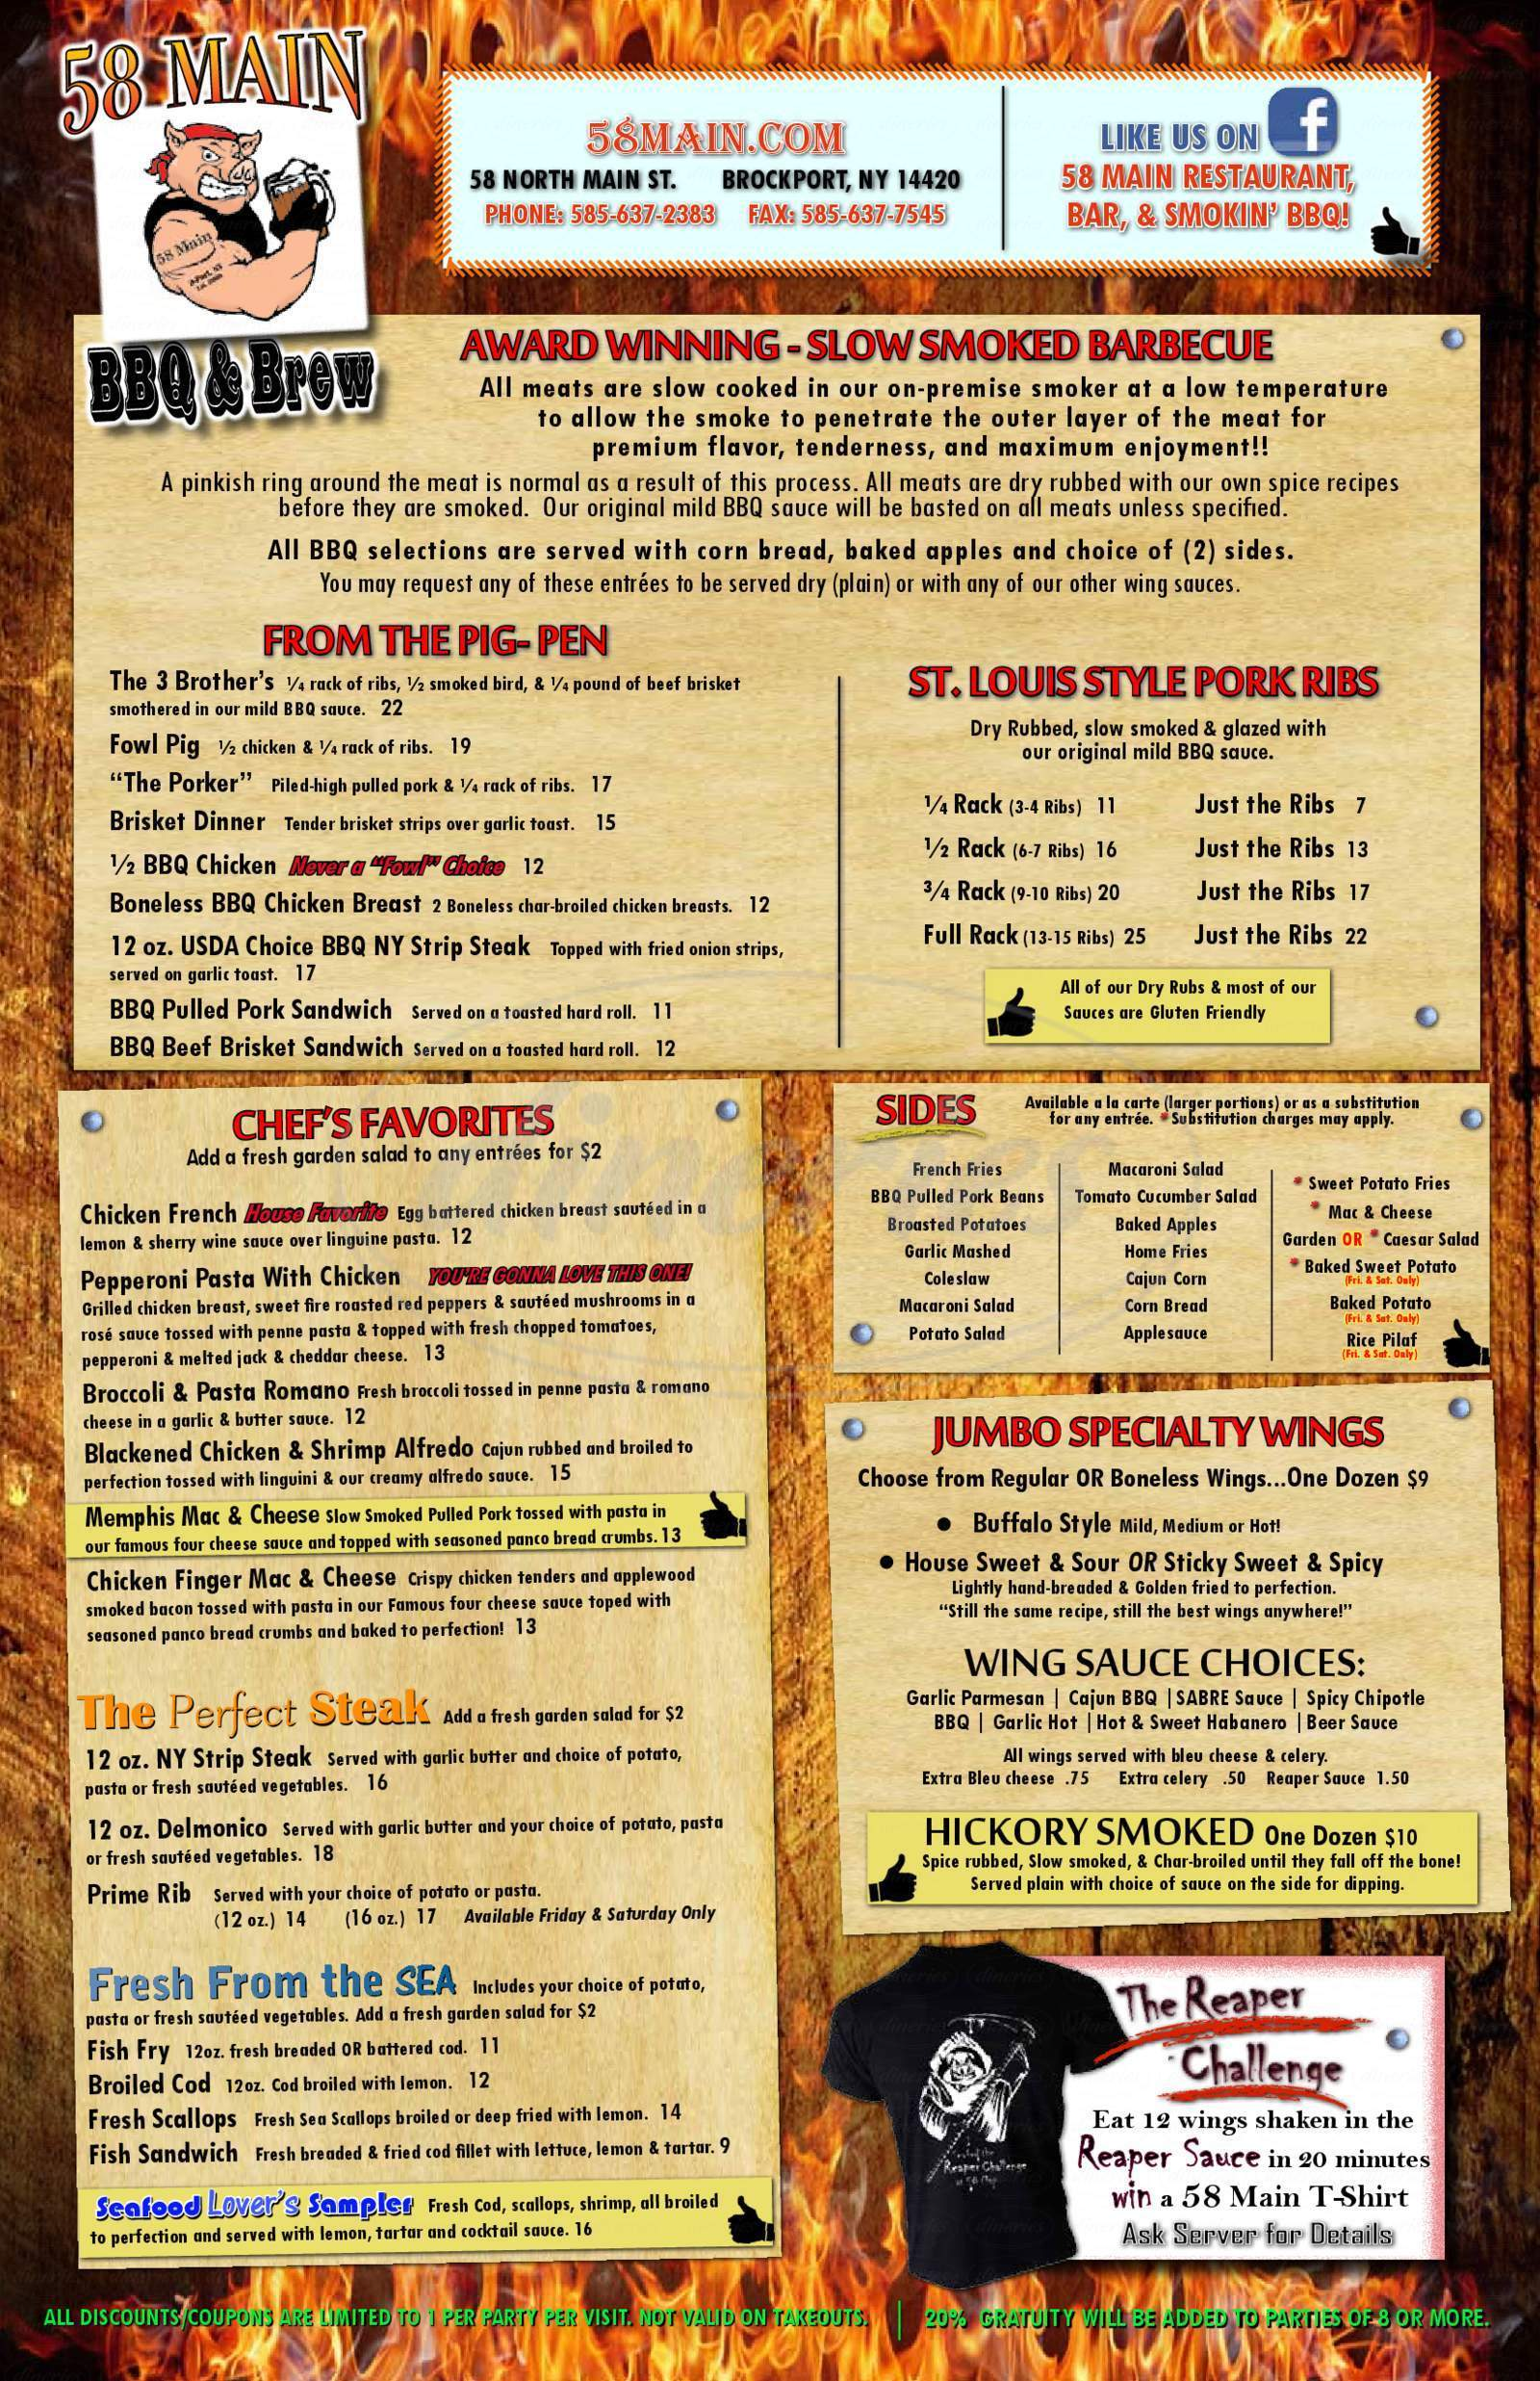 menu for 58 Main Restaurant & Party House